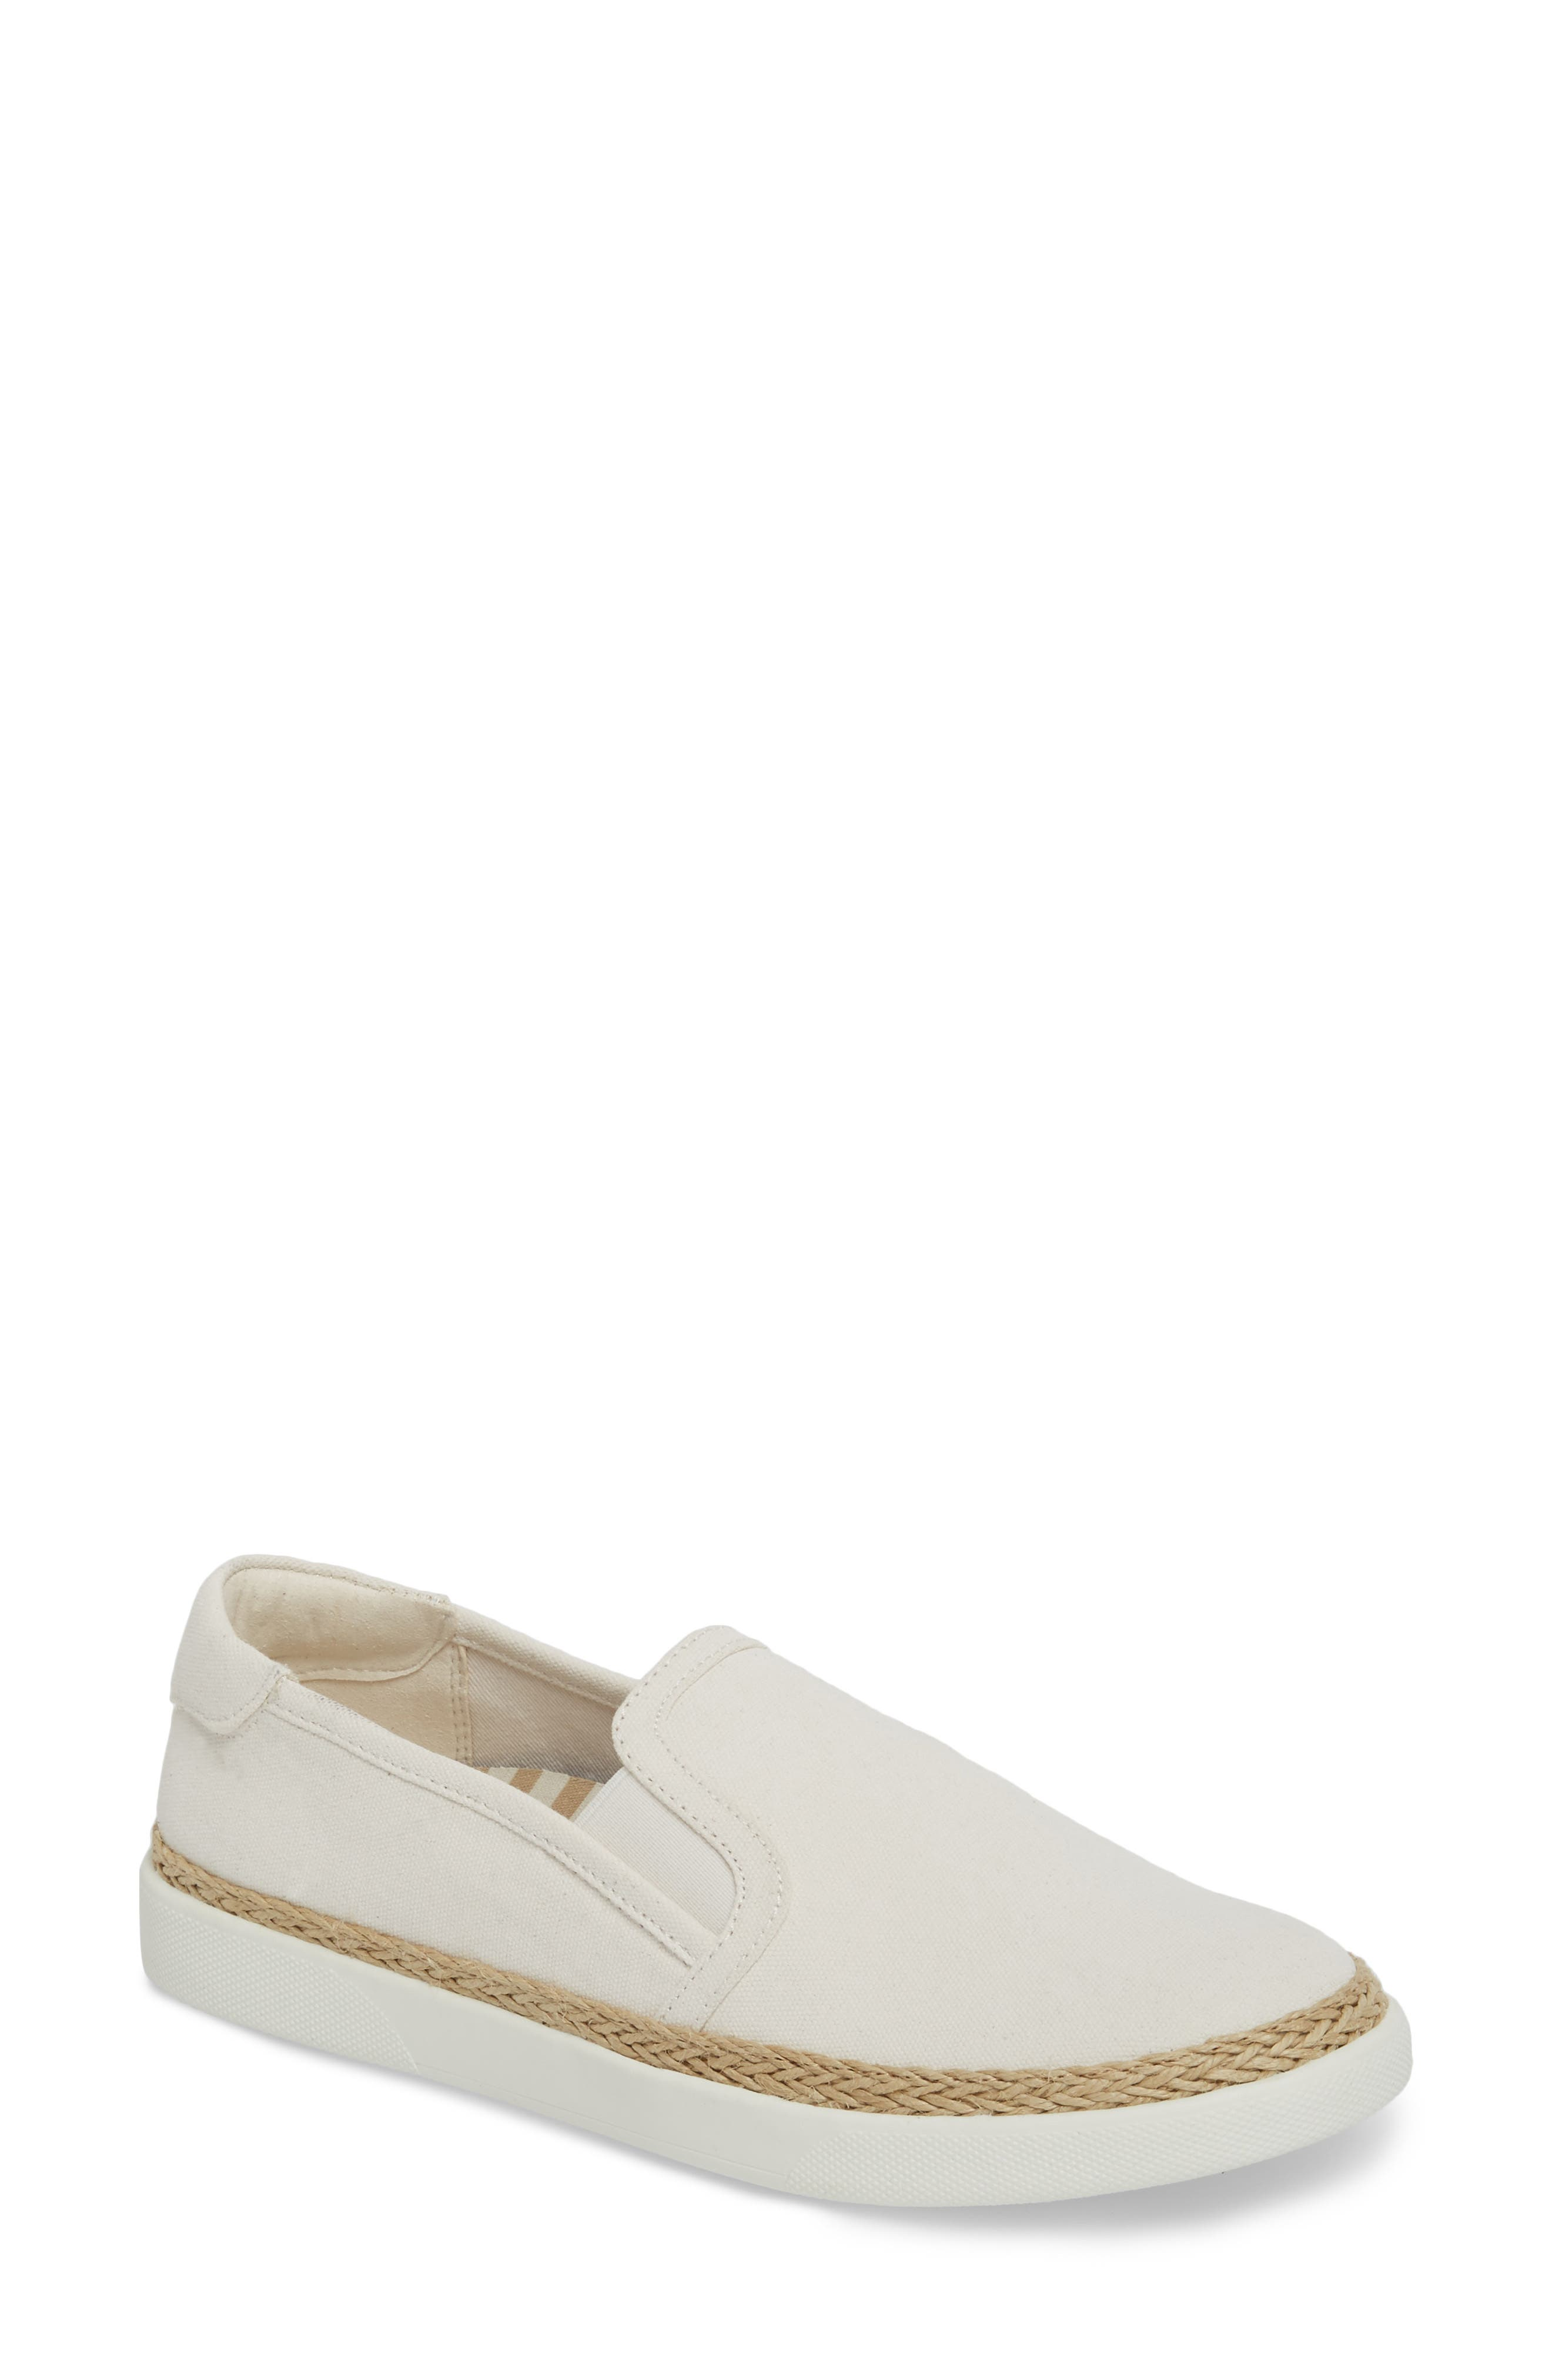 Rae Slip-On Sneaker,                         Main,                         color, IVORY CANVAS